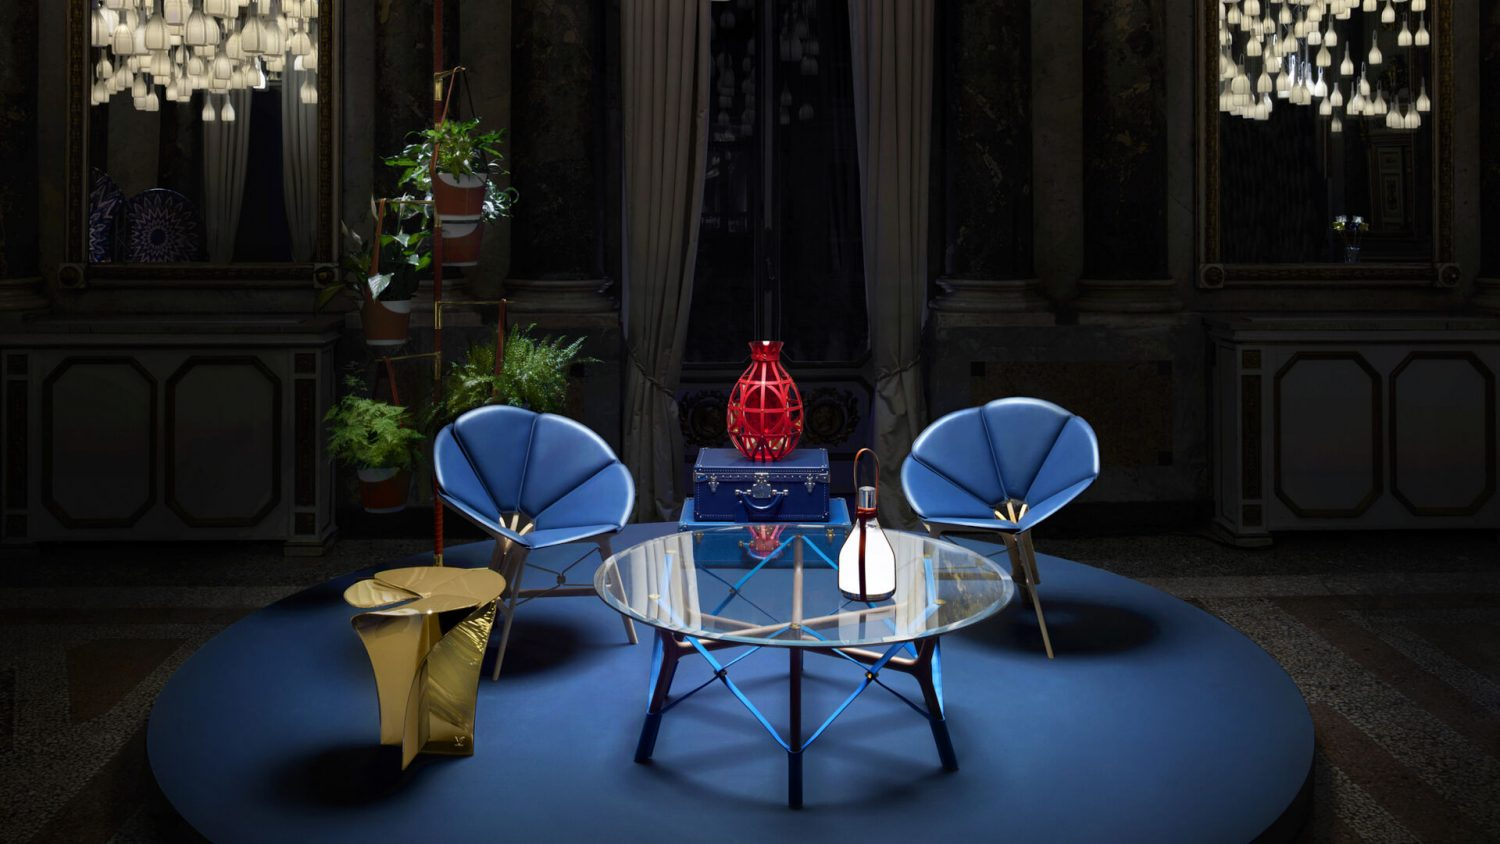 object nomades at Salone del Mobile 2019 salone del mobile 2019 SALONE DEL MOBILE 2019: THE BEST OF THE EVENT 1275212